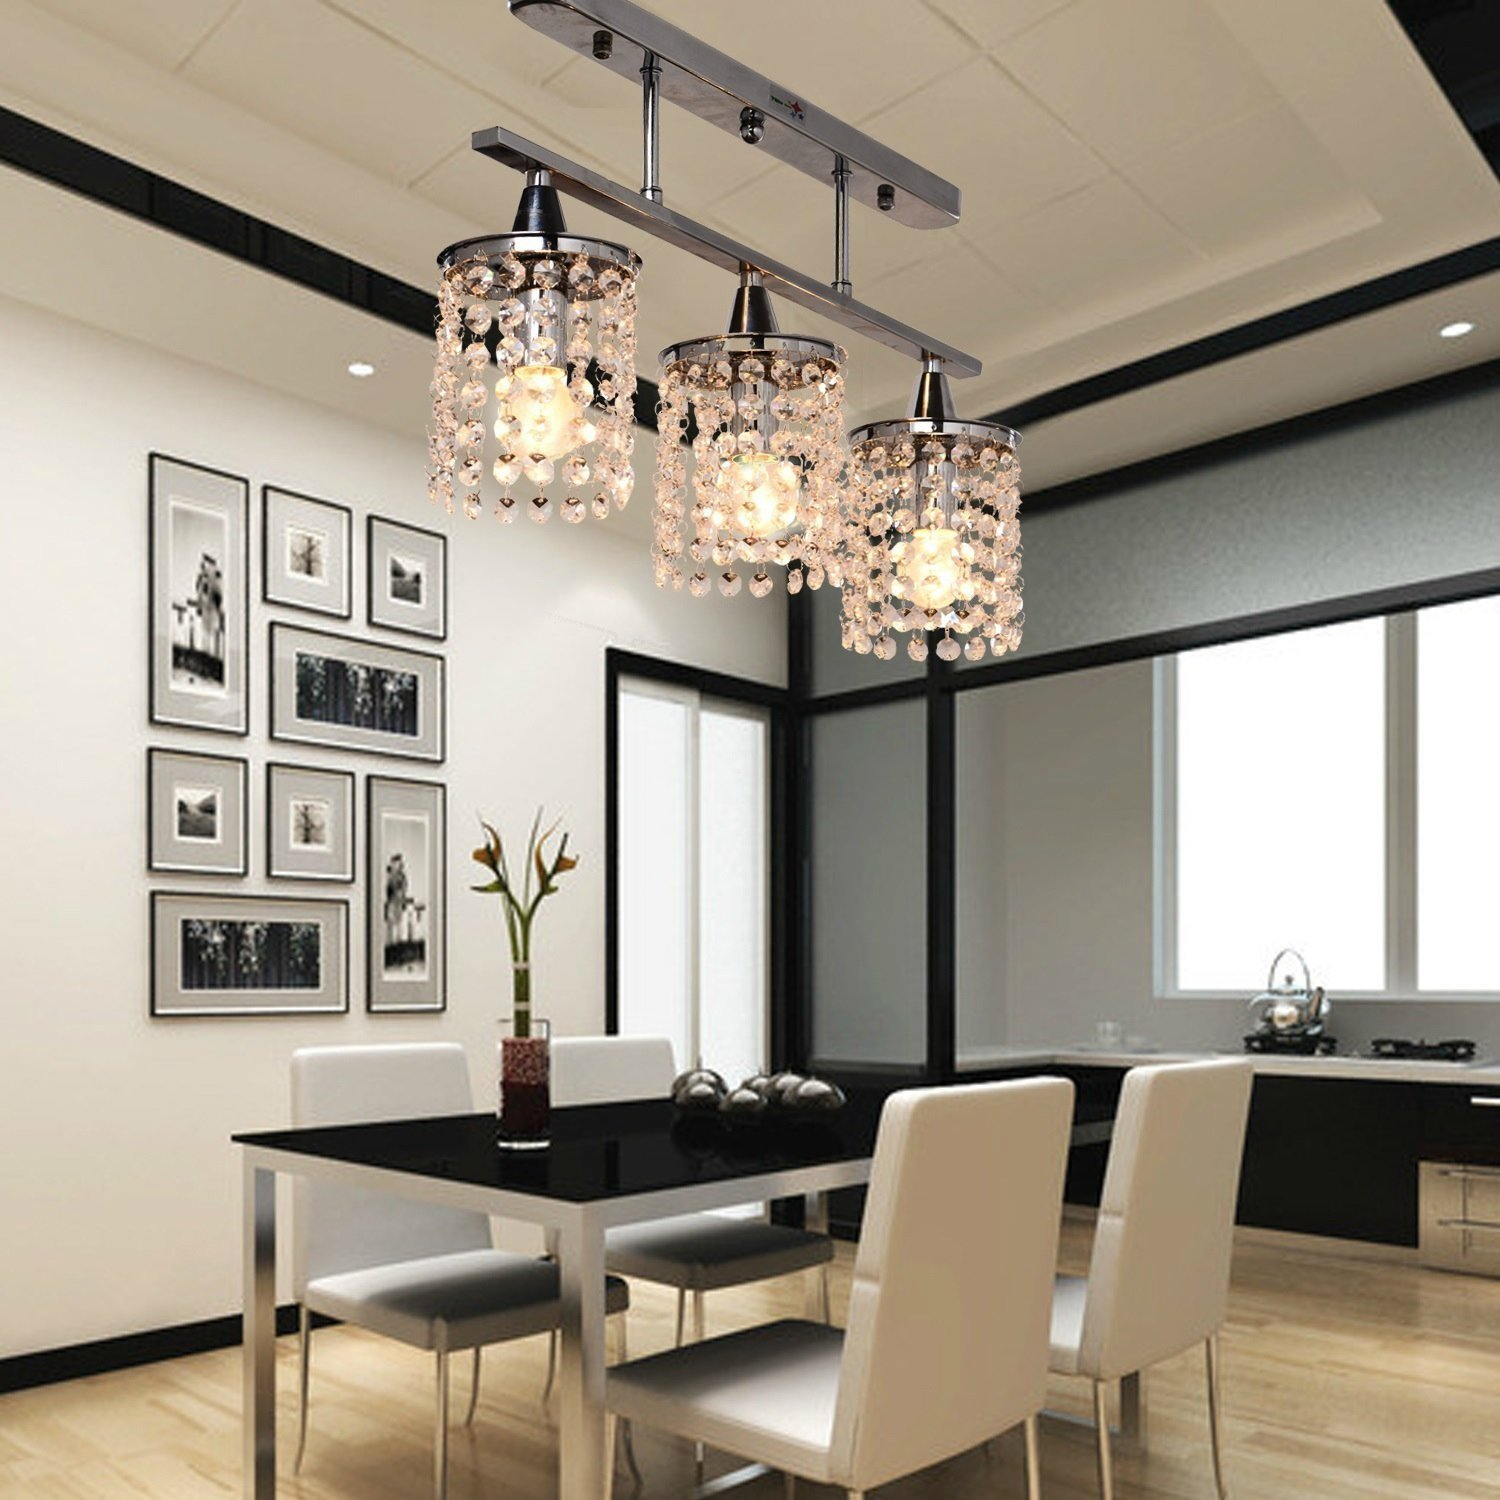 3 Lights Hanging LED k9 Crystal Linear Chandelier with stainless steel  Fixture Modern Ceiling lamp luminarias. Online Get Cheap Modern Ceiling Pendants  Aliexpress com   Alibaba